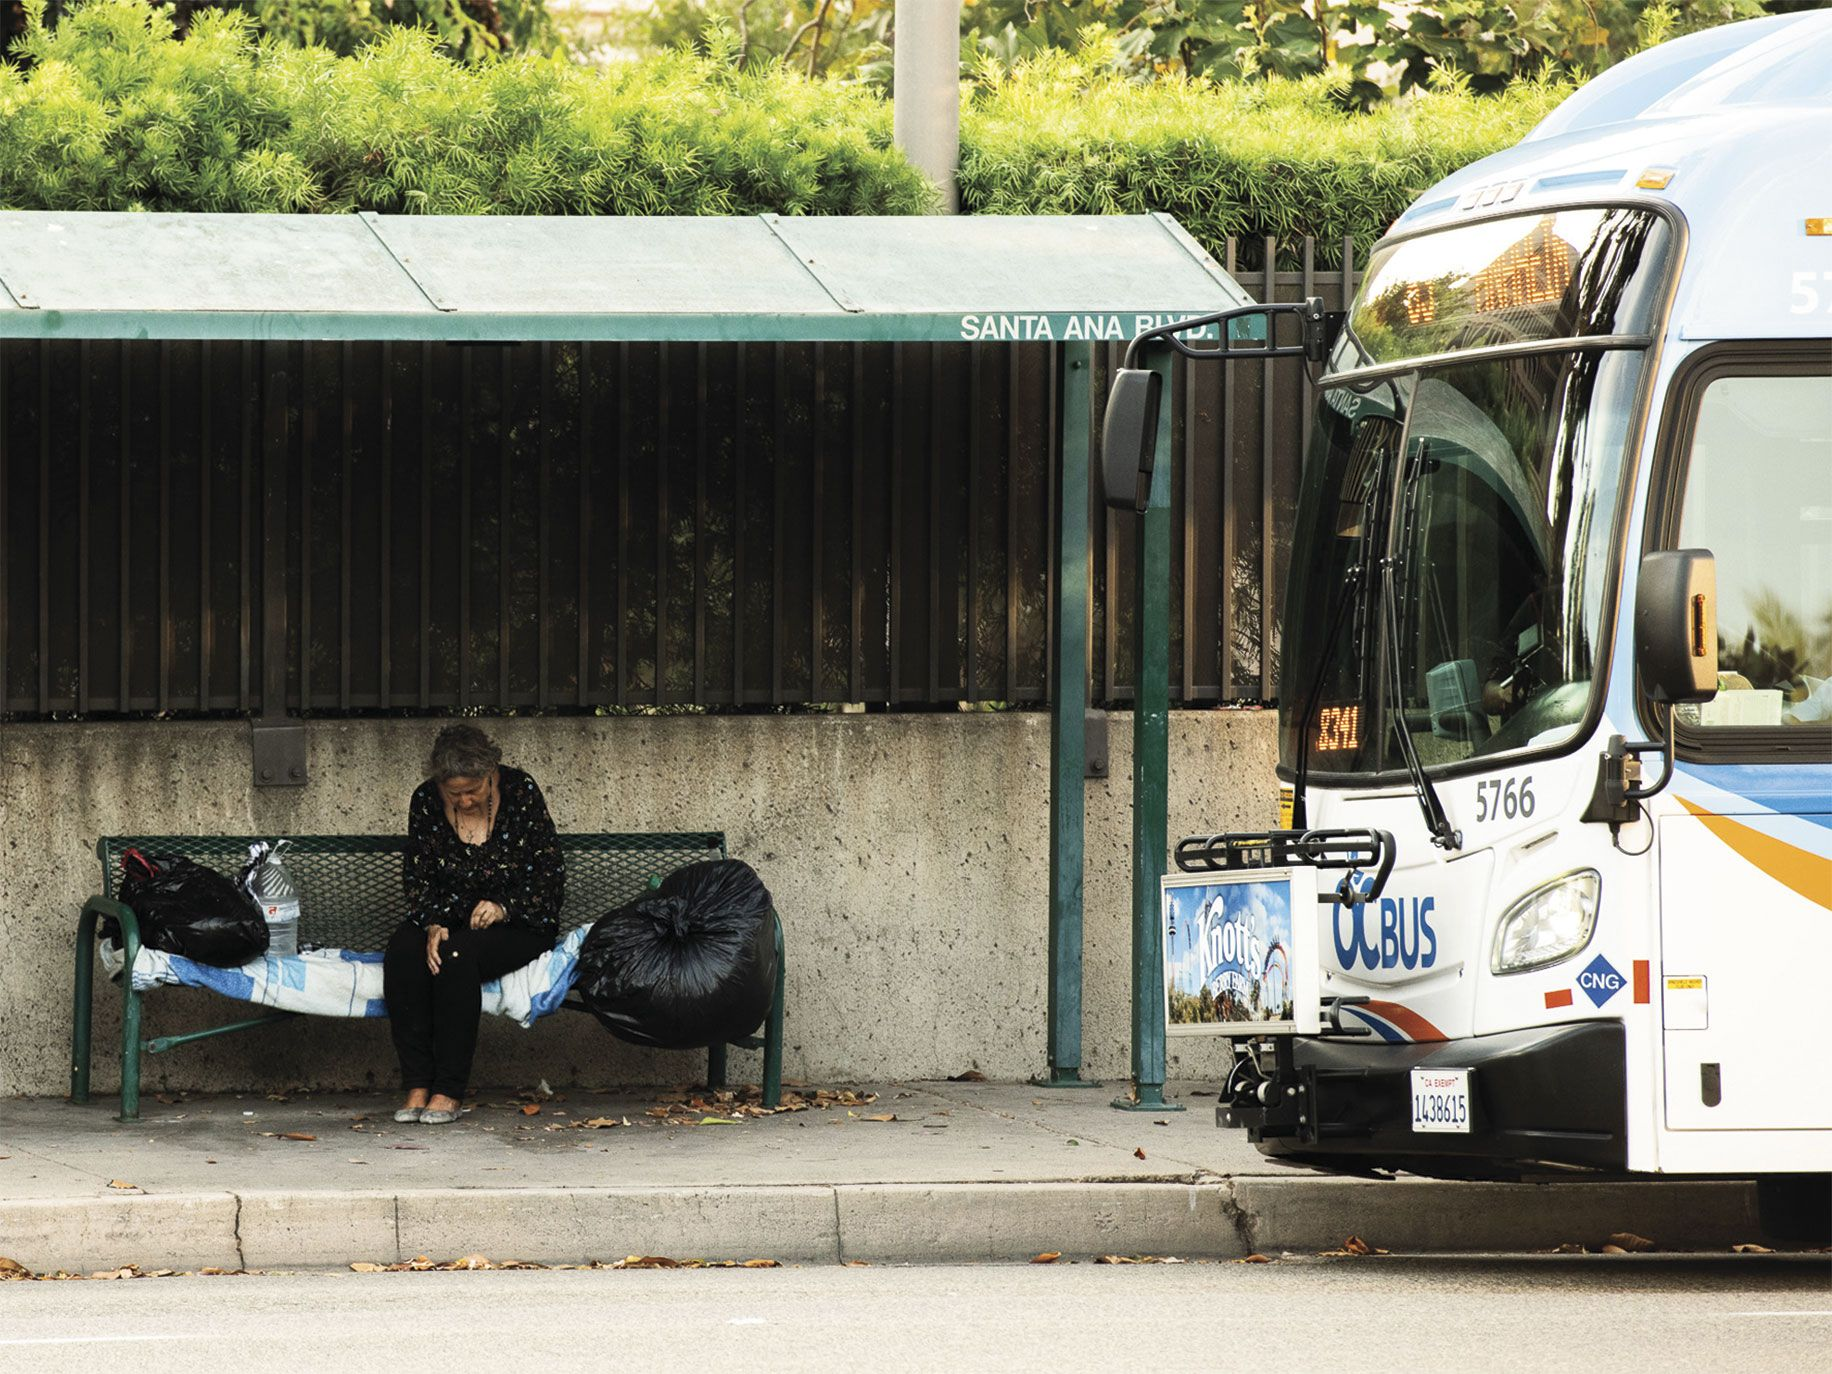 Like most of California, Orange County is seeing an increase in homeless people, like this woman camped out at a bus stop.